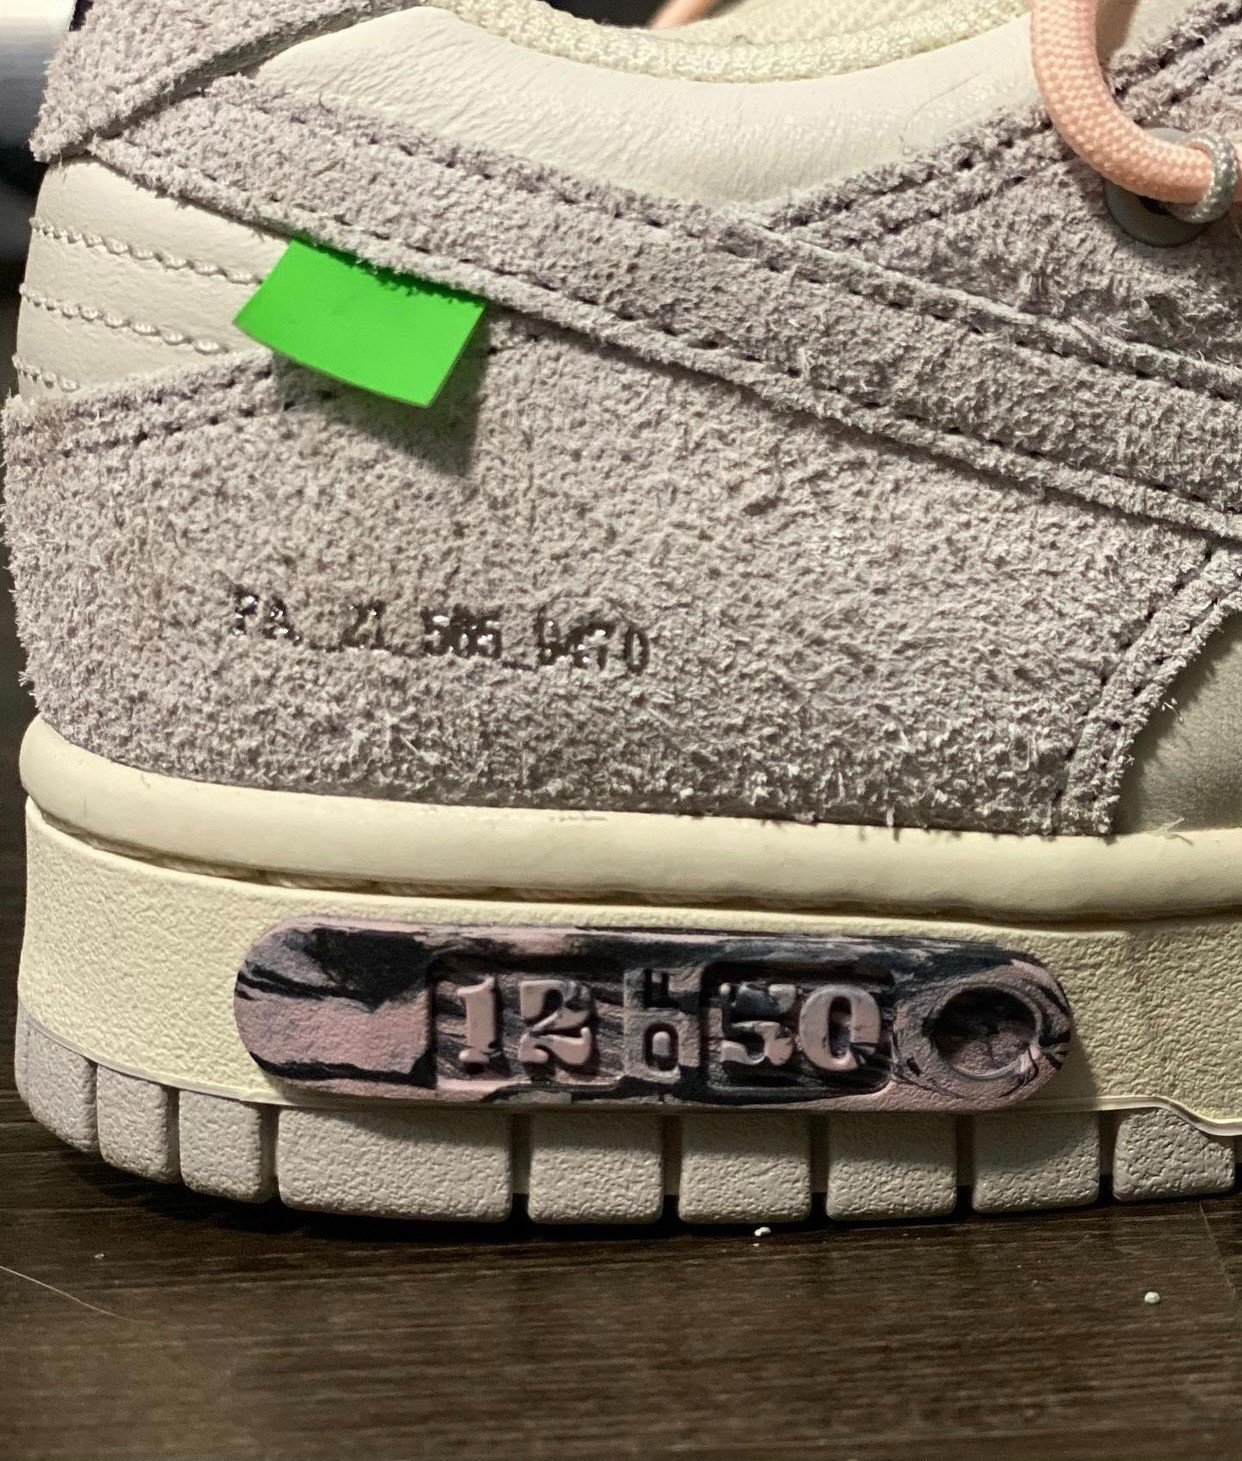 OFF-WHITE,Nike,Dunk Low,发售  「THE 50」OW x Dunk Low 又有新配色!专属鞋盒首次曝光!